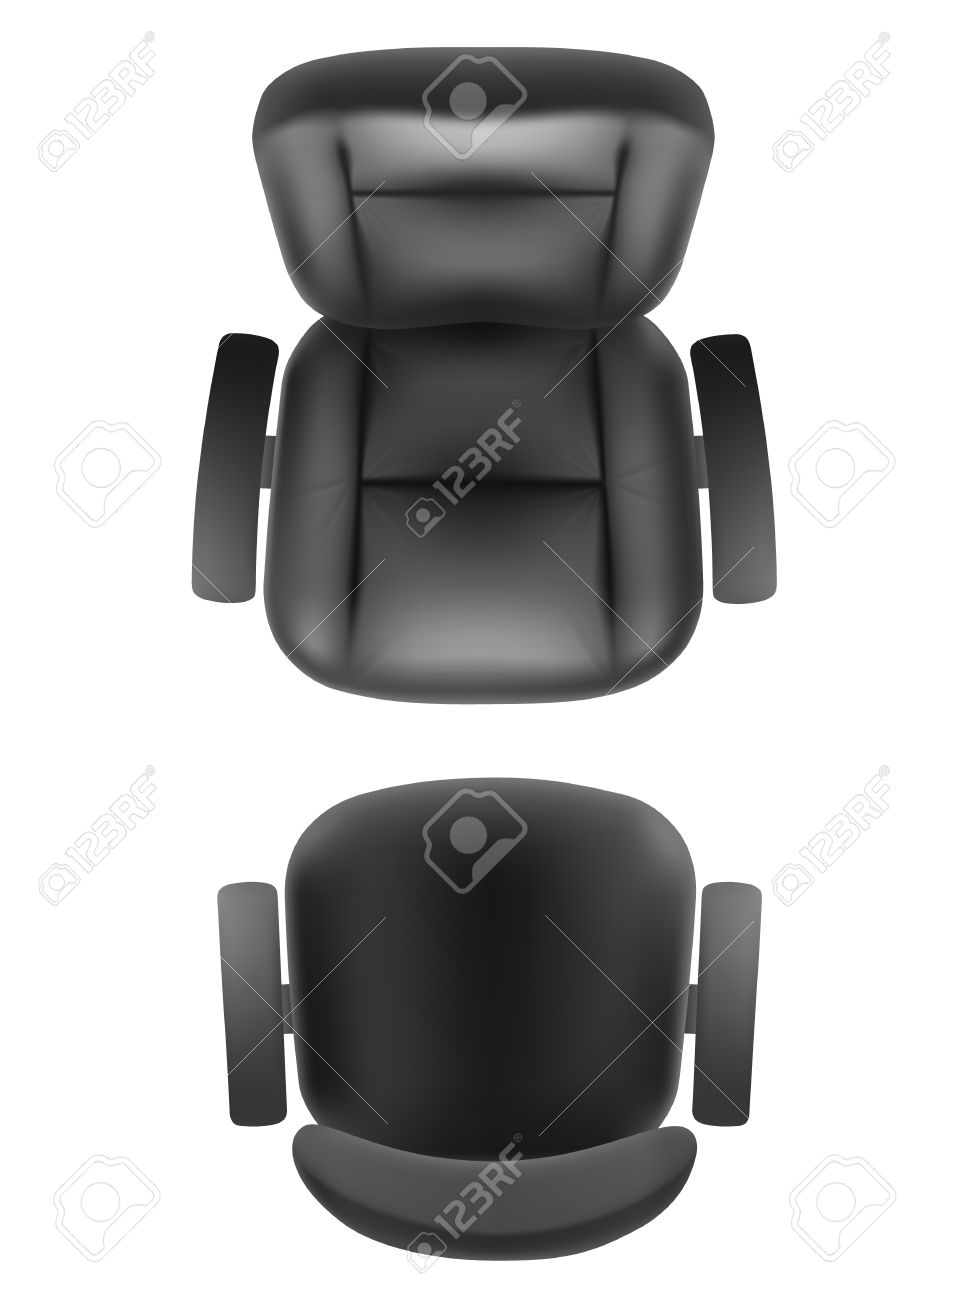 Office chair and boss armchair top view realistic, isolated. Furniture for office, cabinet or conference room plan. Stock Vector - 57014668